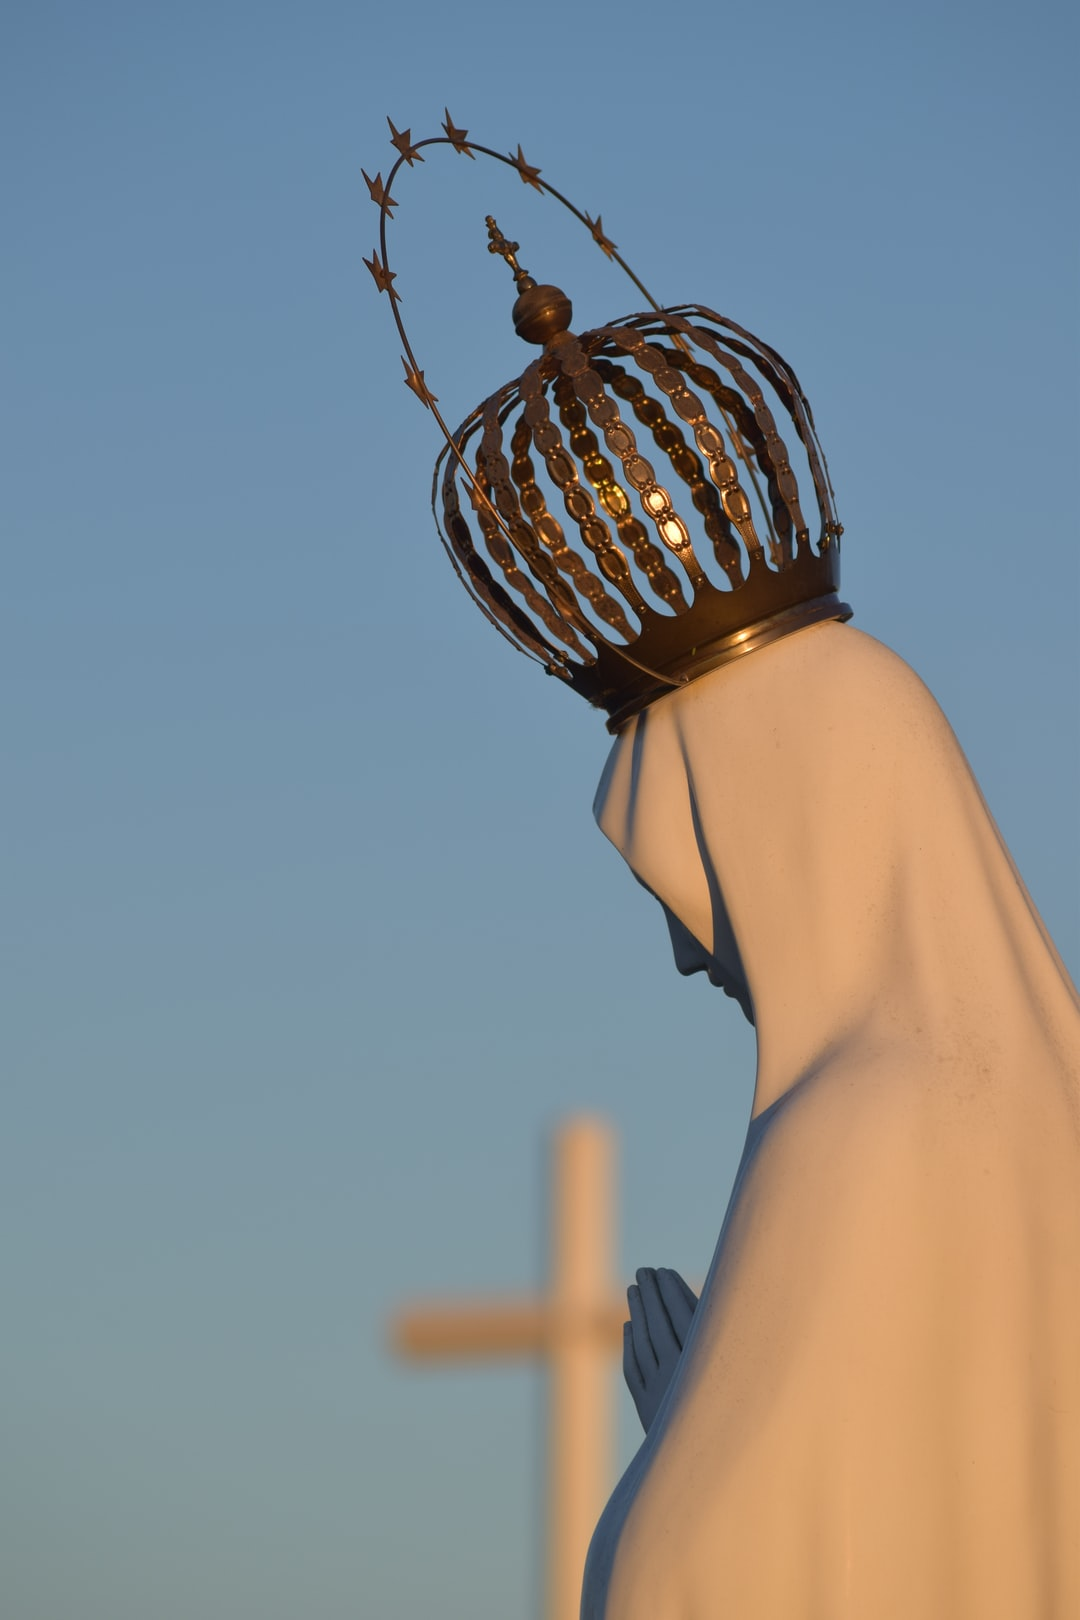 Our Lady statue in a warm sunset light